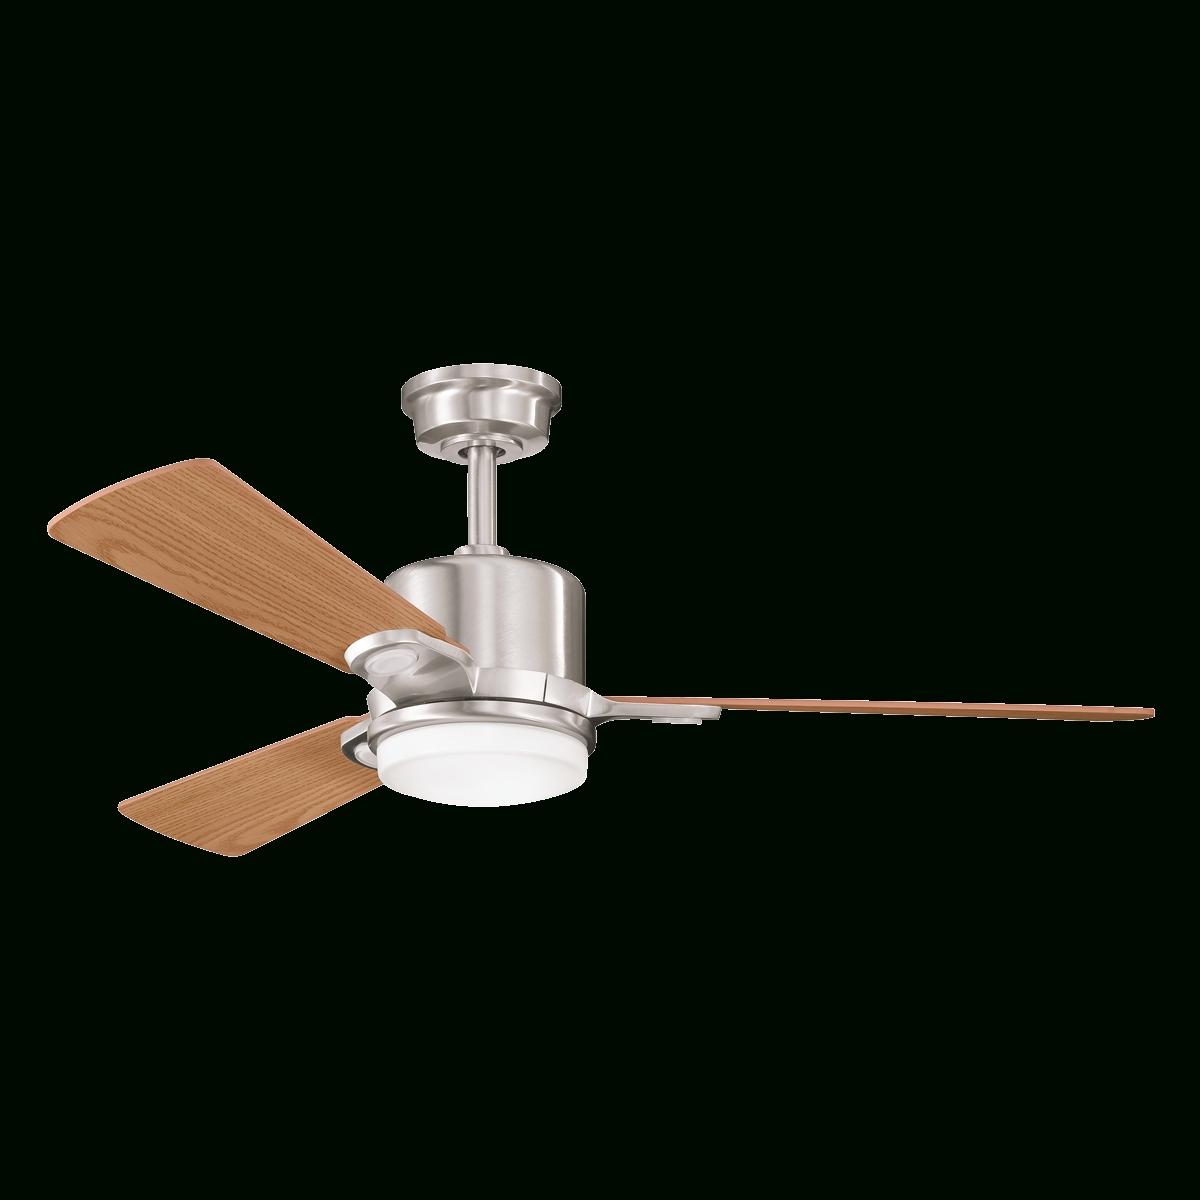 Latest 48 Inch Outdoor Ceiling Fans With Light Throughout 48 Inch Celino Contemporary Fan Bss (View 4 of 20)